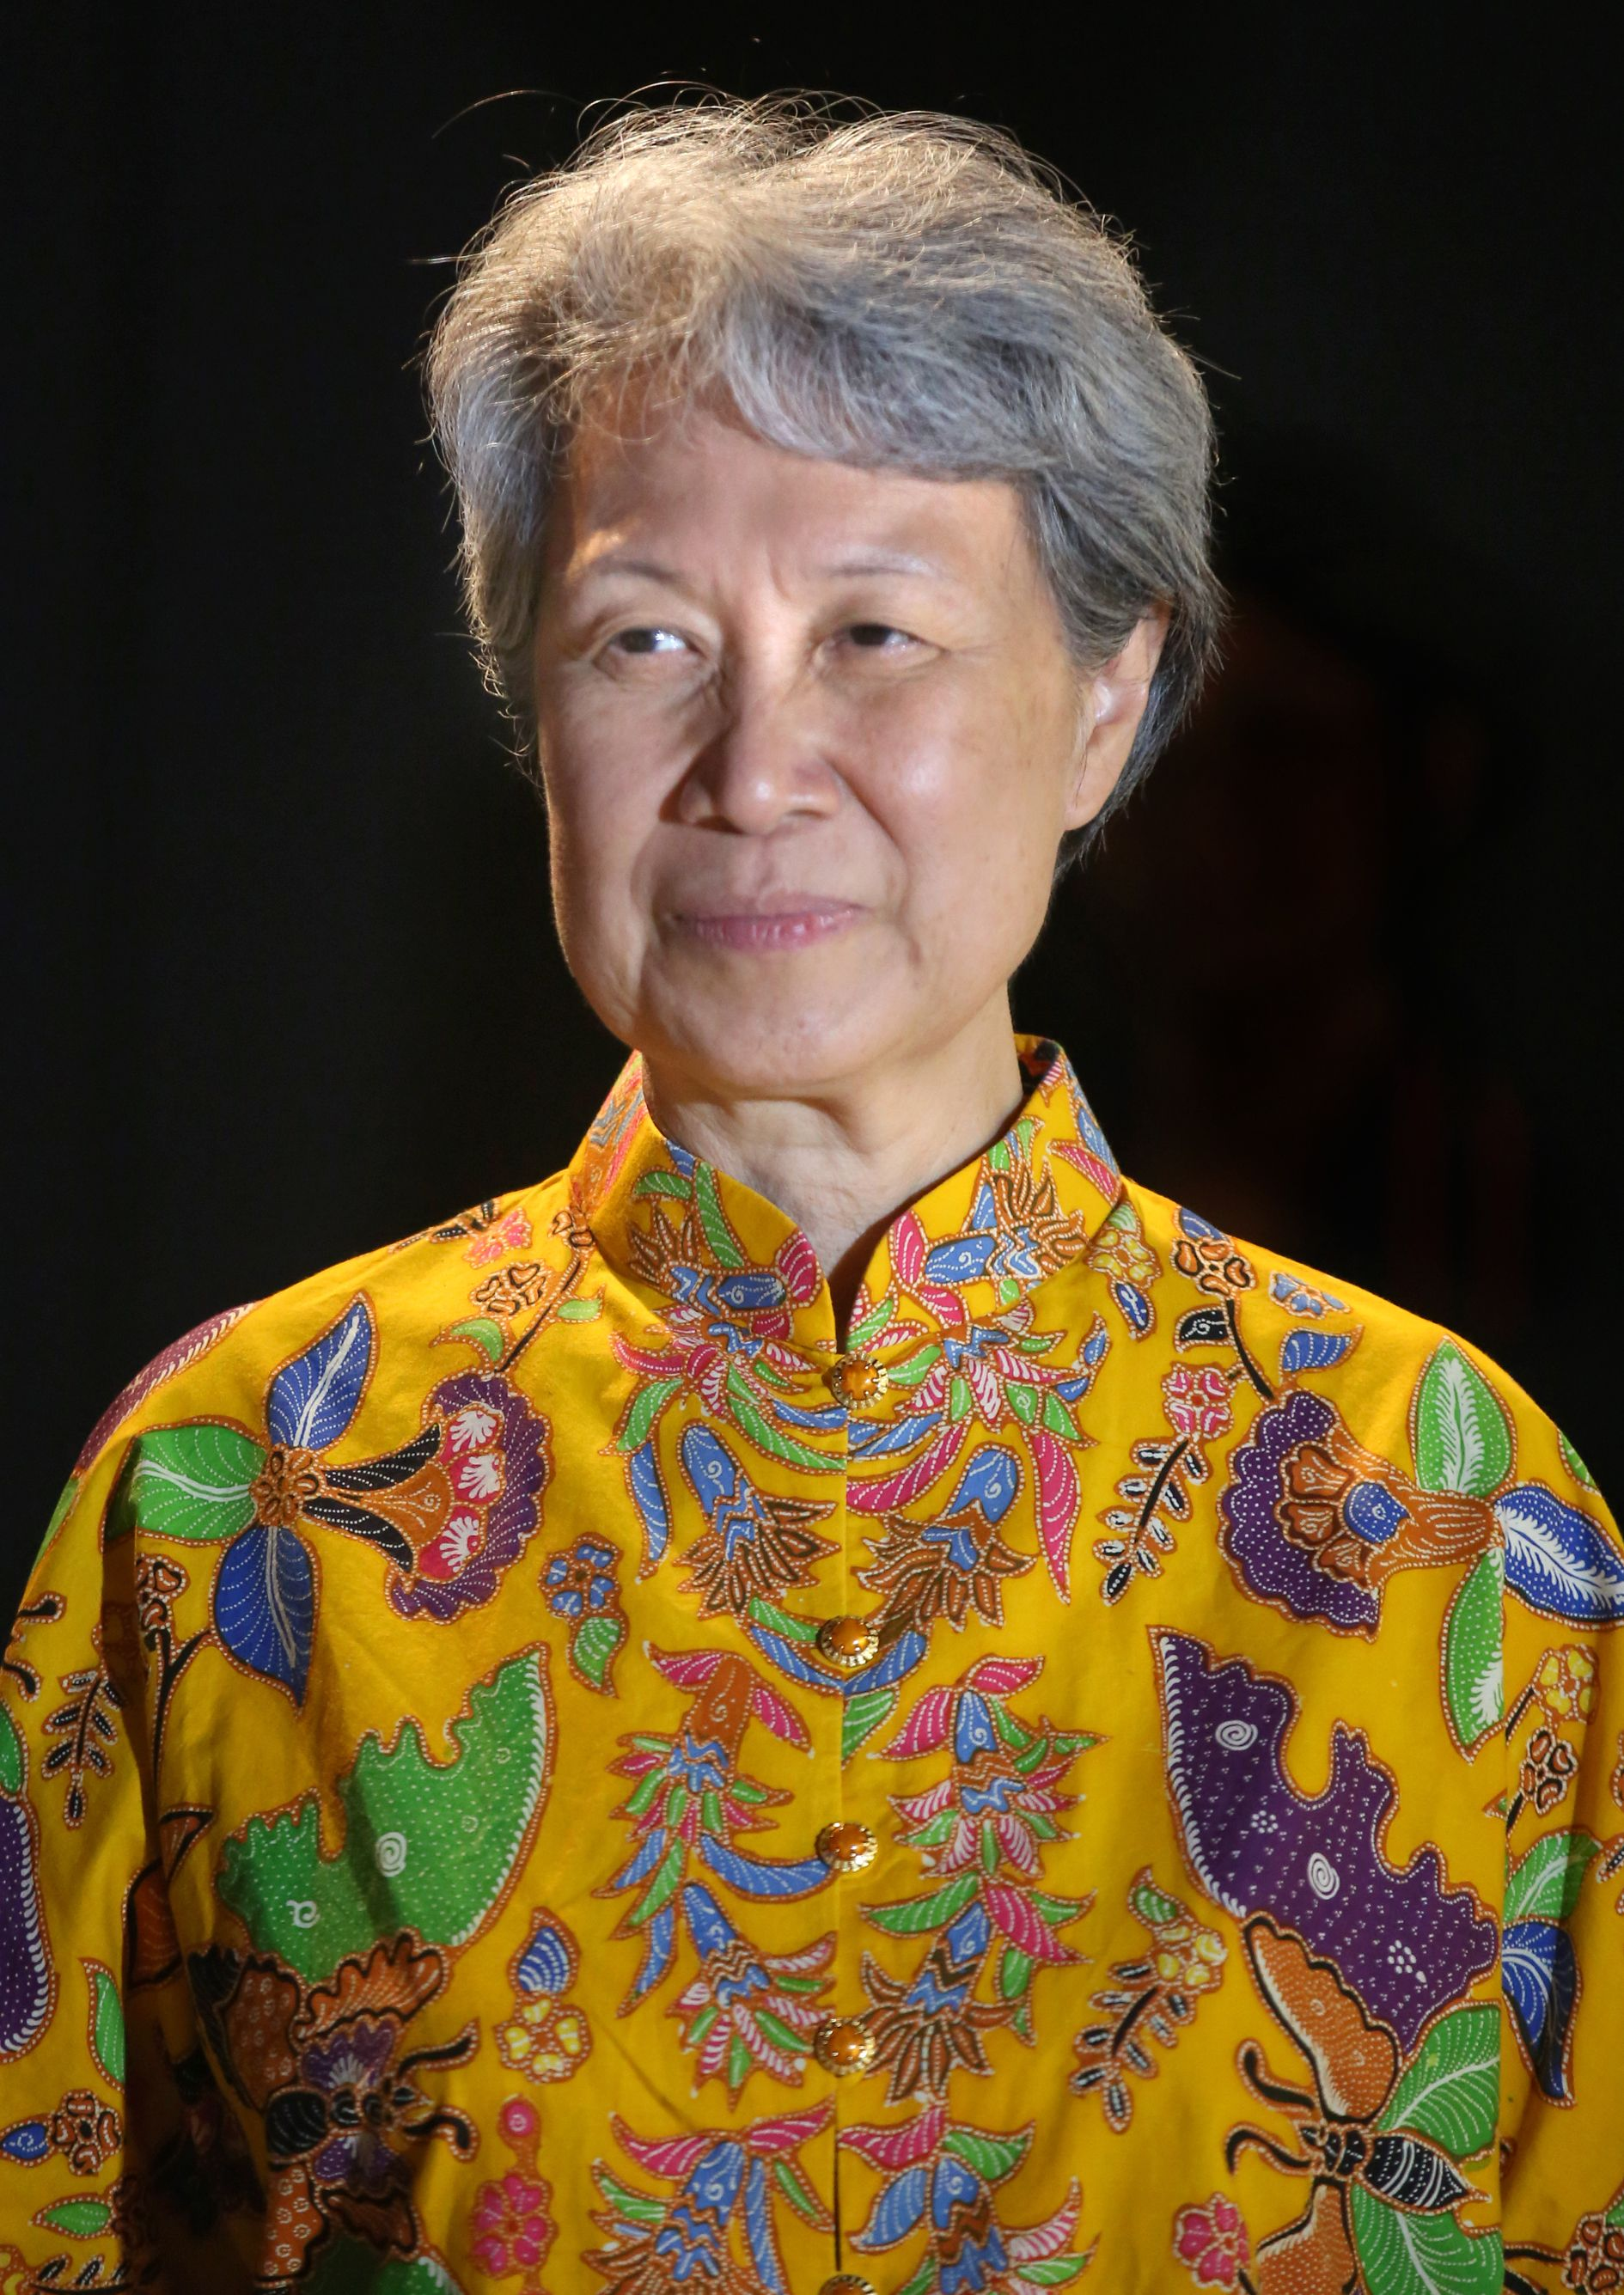 ho ching Ho ching serves at temasek holdings as its chief executive officer she joined the company as director in january 2002, became its executive director in may 2002, and.